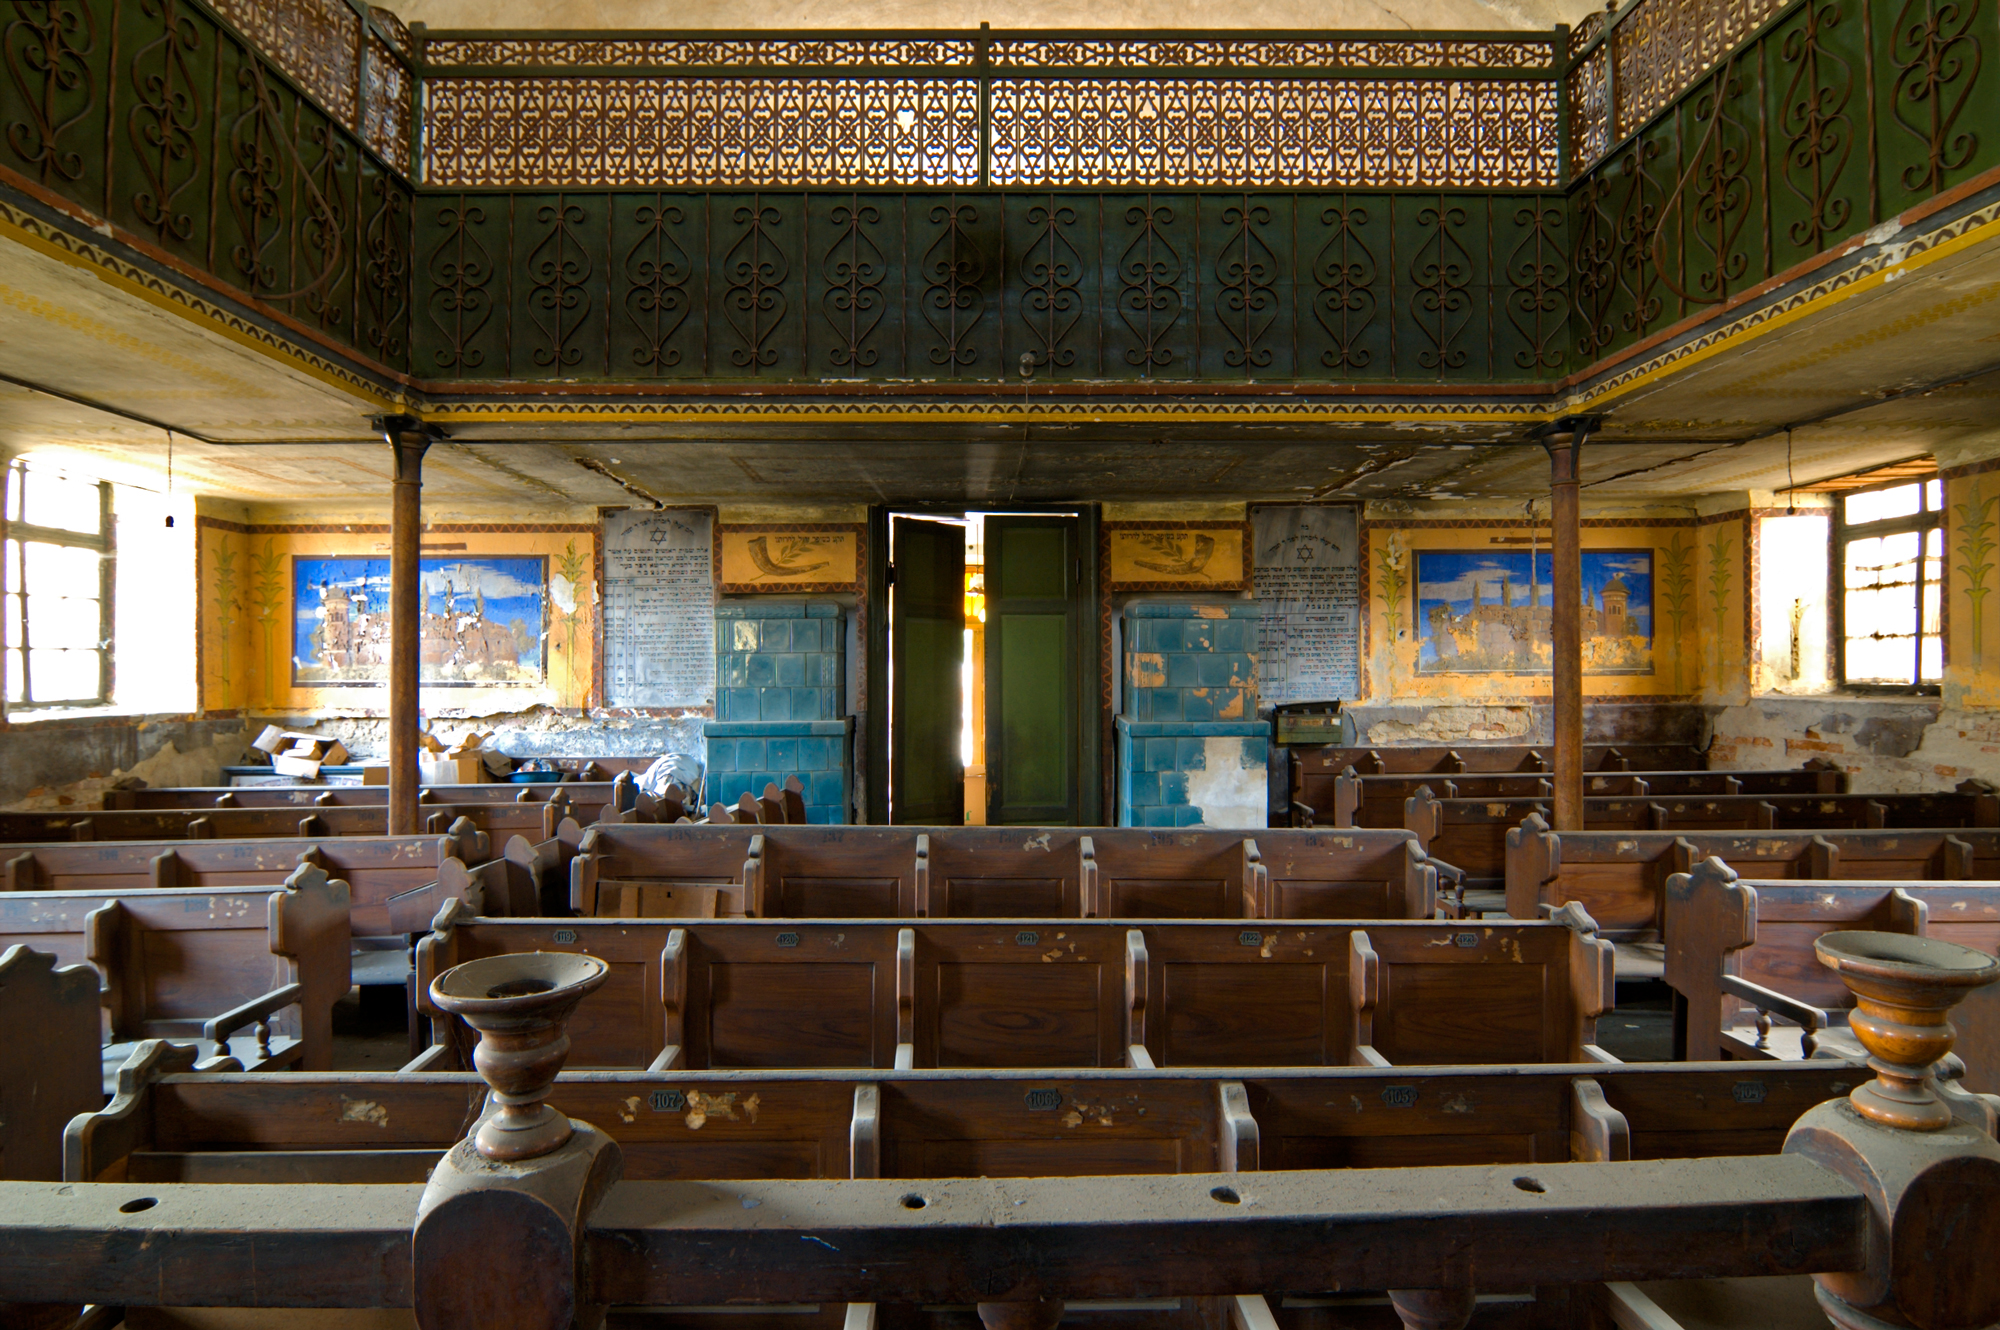 Interior of the Mediaș synagogue, Romania – Photo by Christian Binder